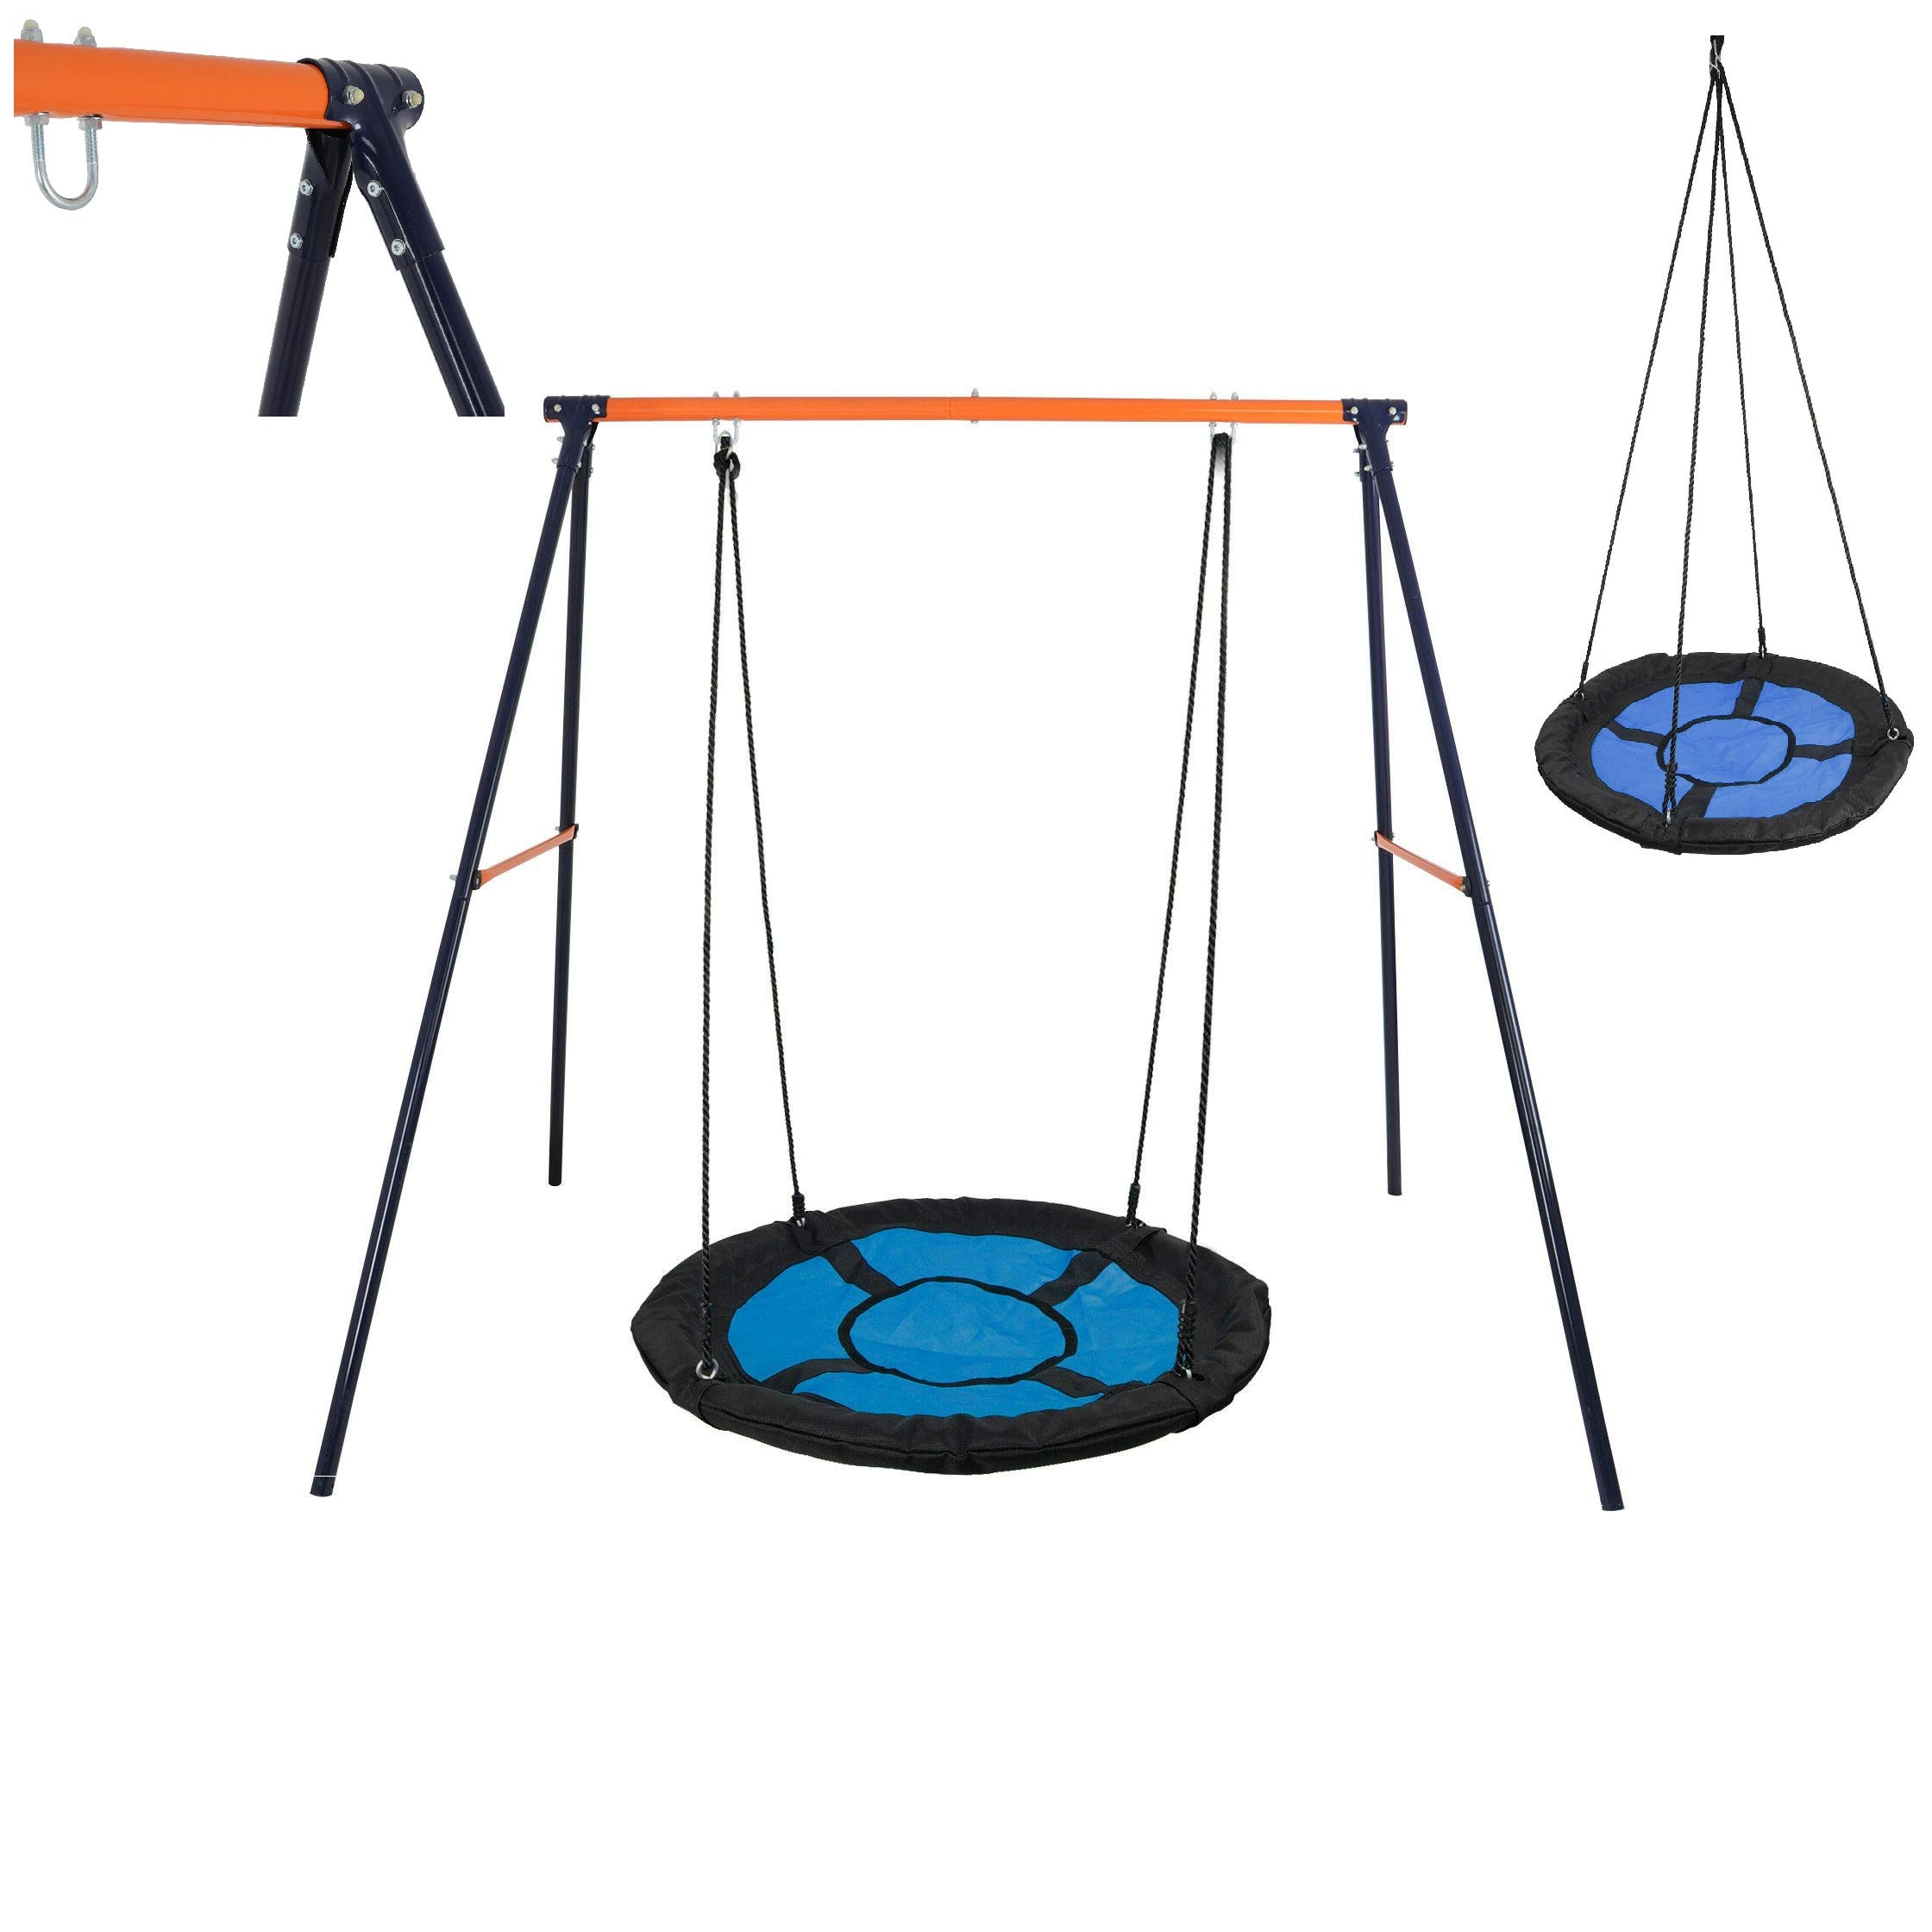 Safety AFrame Swing Reliable Stand Play w/Large 40'' Platform Saucer Tree Swing up 444LB Quick Arrive